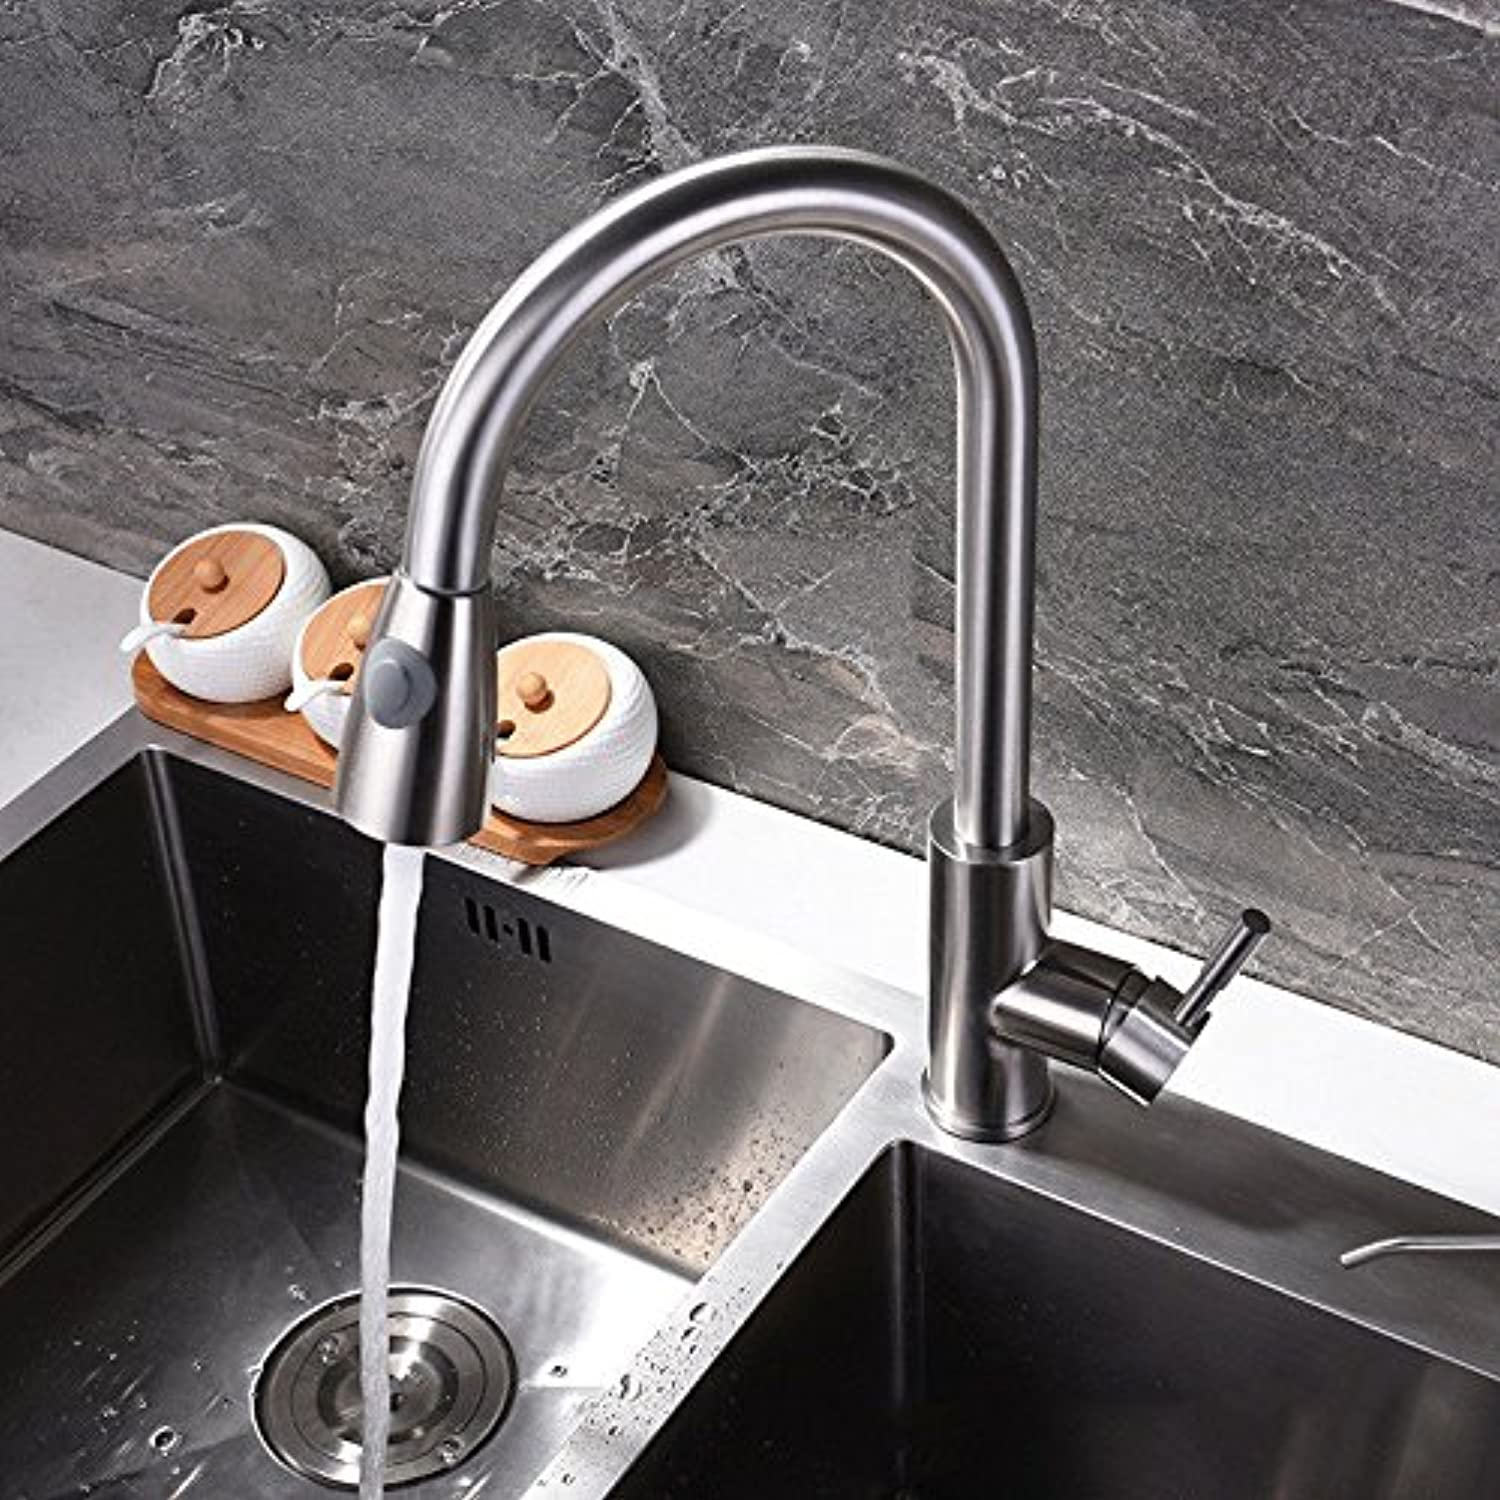 Commercial Single Lever Pull Down Kitchen Sink Faucet Brass Constructed Polished Pulling The Basin Faucet_Stainless Steel 304 Hot and Cold Pulling Dish Sink Faucet Kitchen Multi-Function Faucet